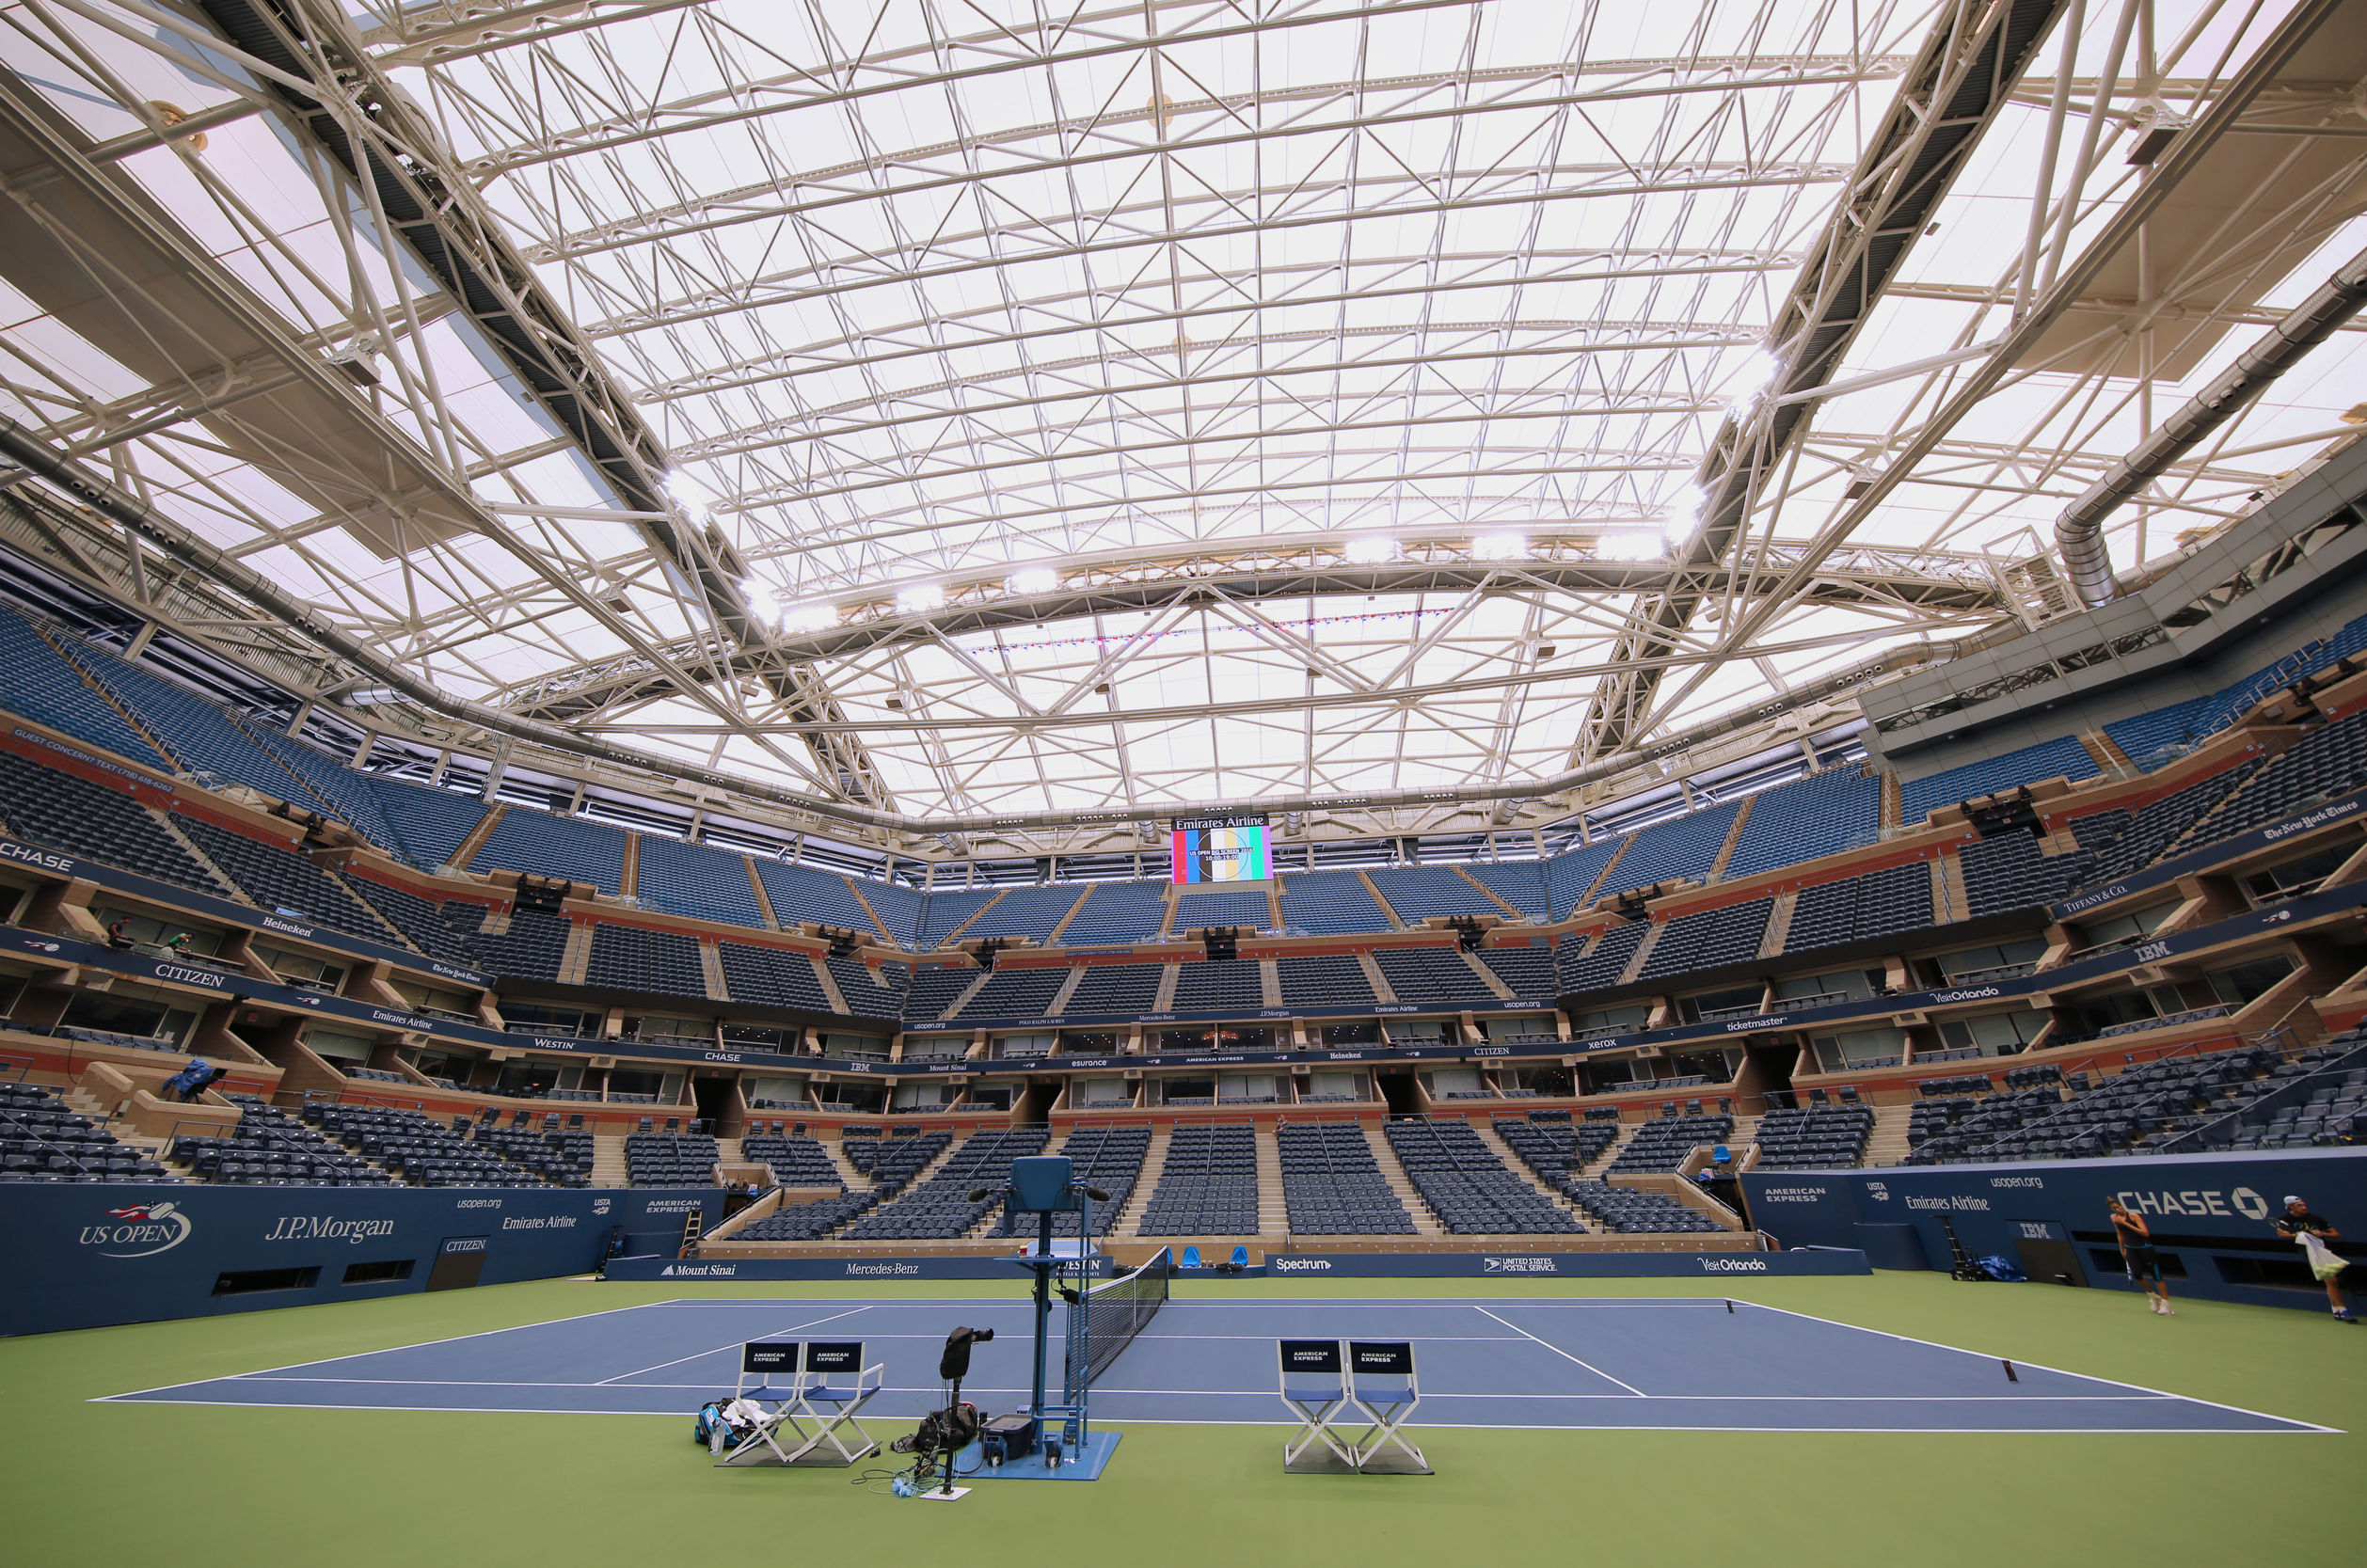 That $150 million roof at Arthur Ashe Stadium is making tennis a